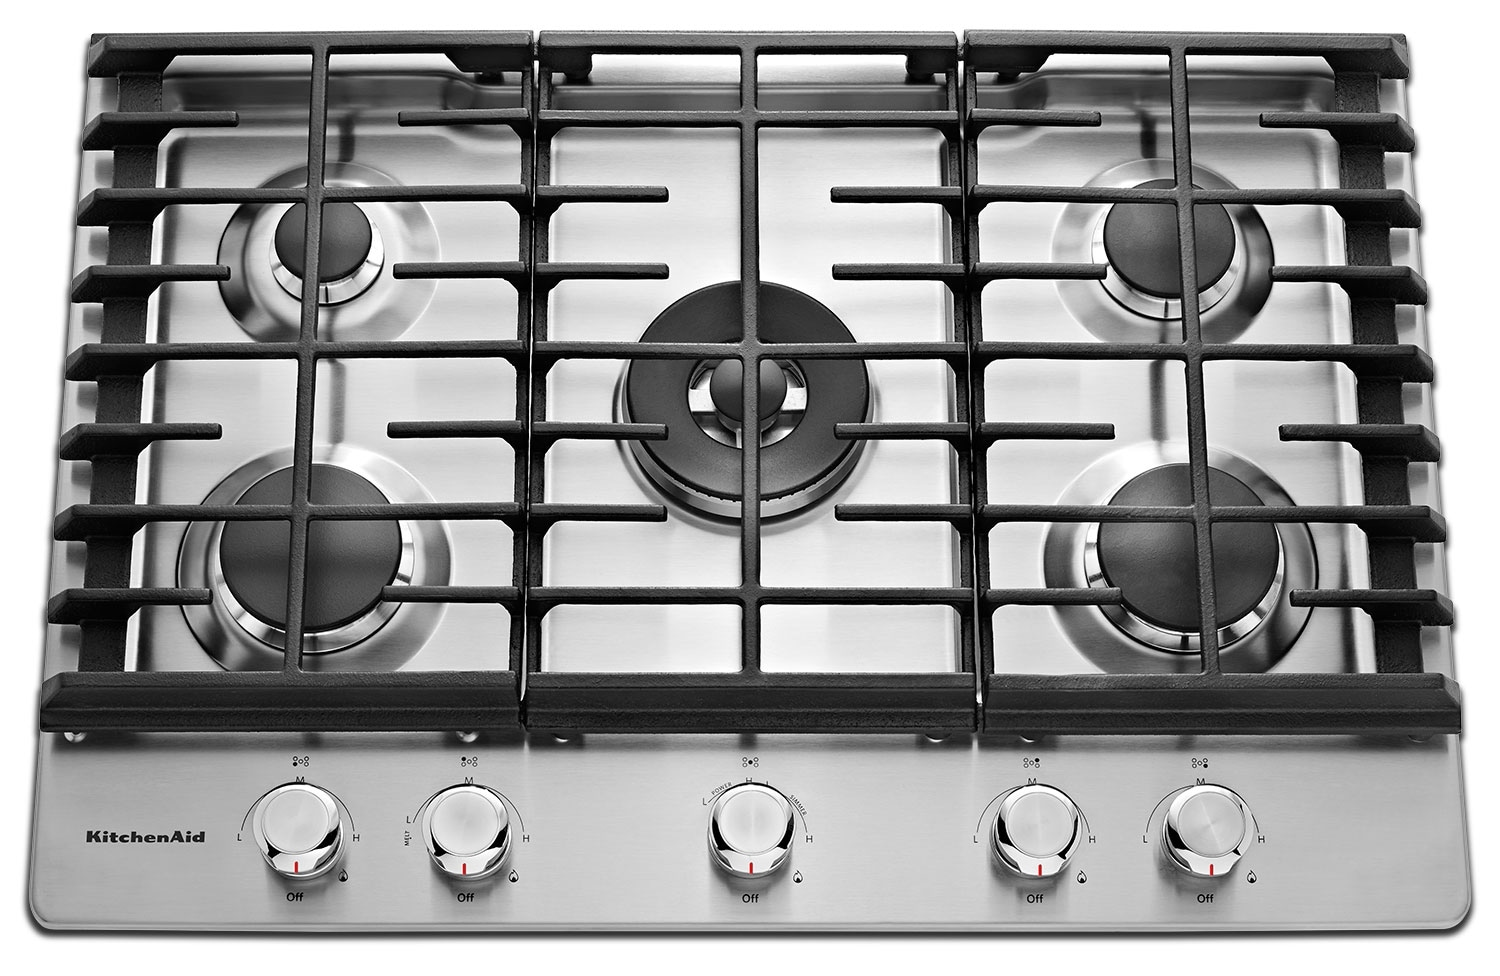 Cooking Products - KitchenAid Gas Cooktop KCGS550ESS